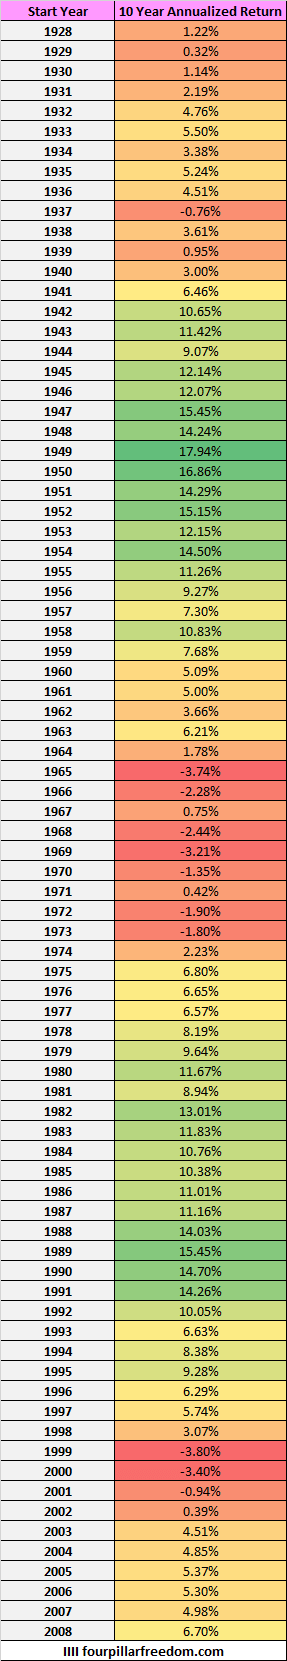 S&P 500 annualized 10-year returns